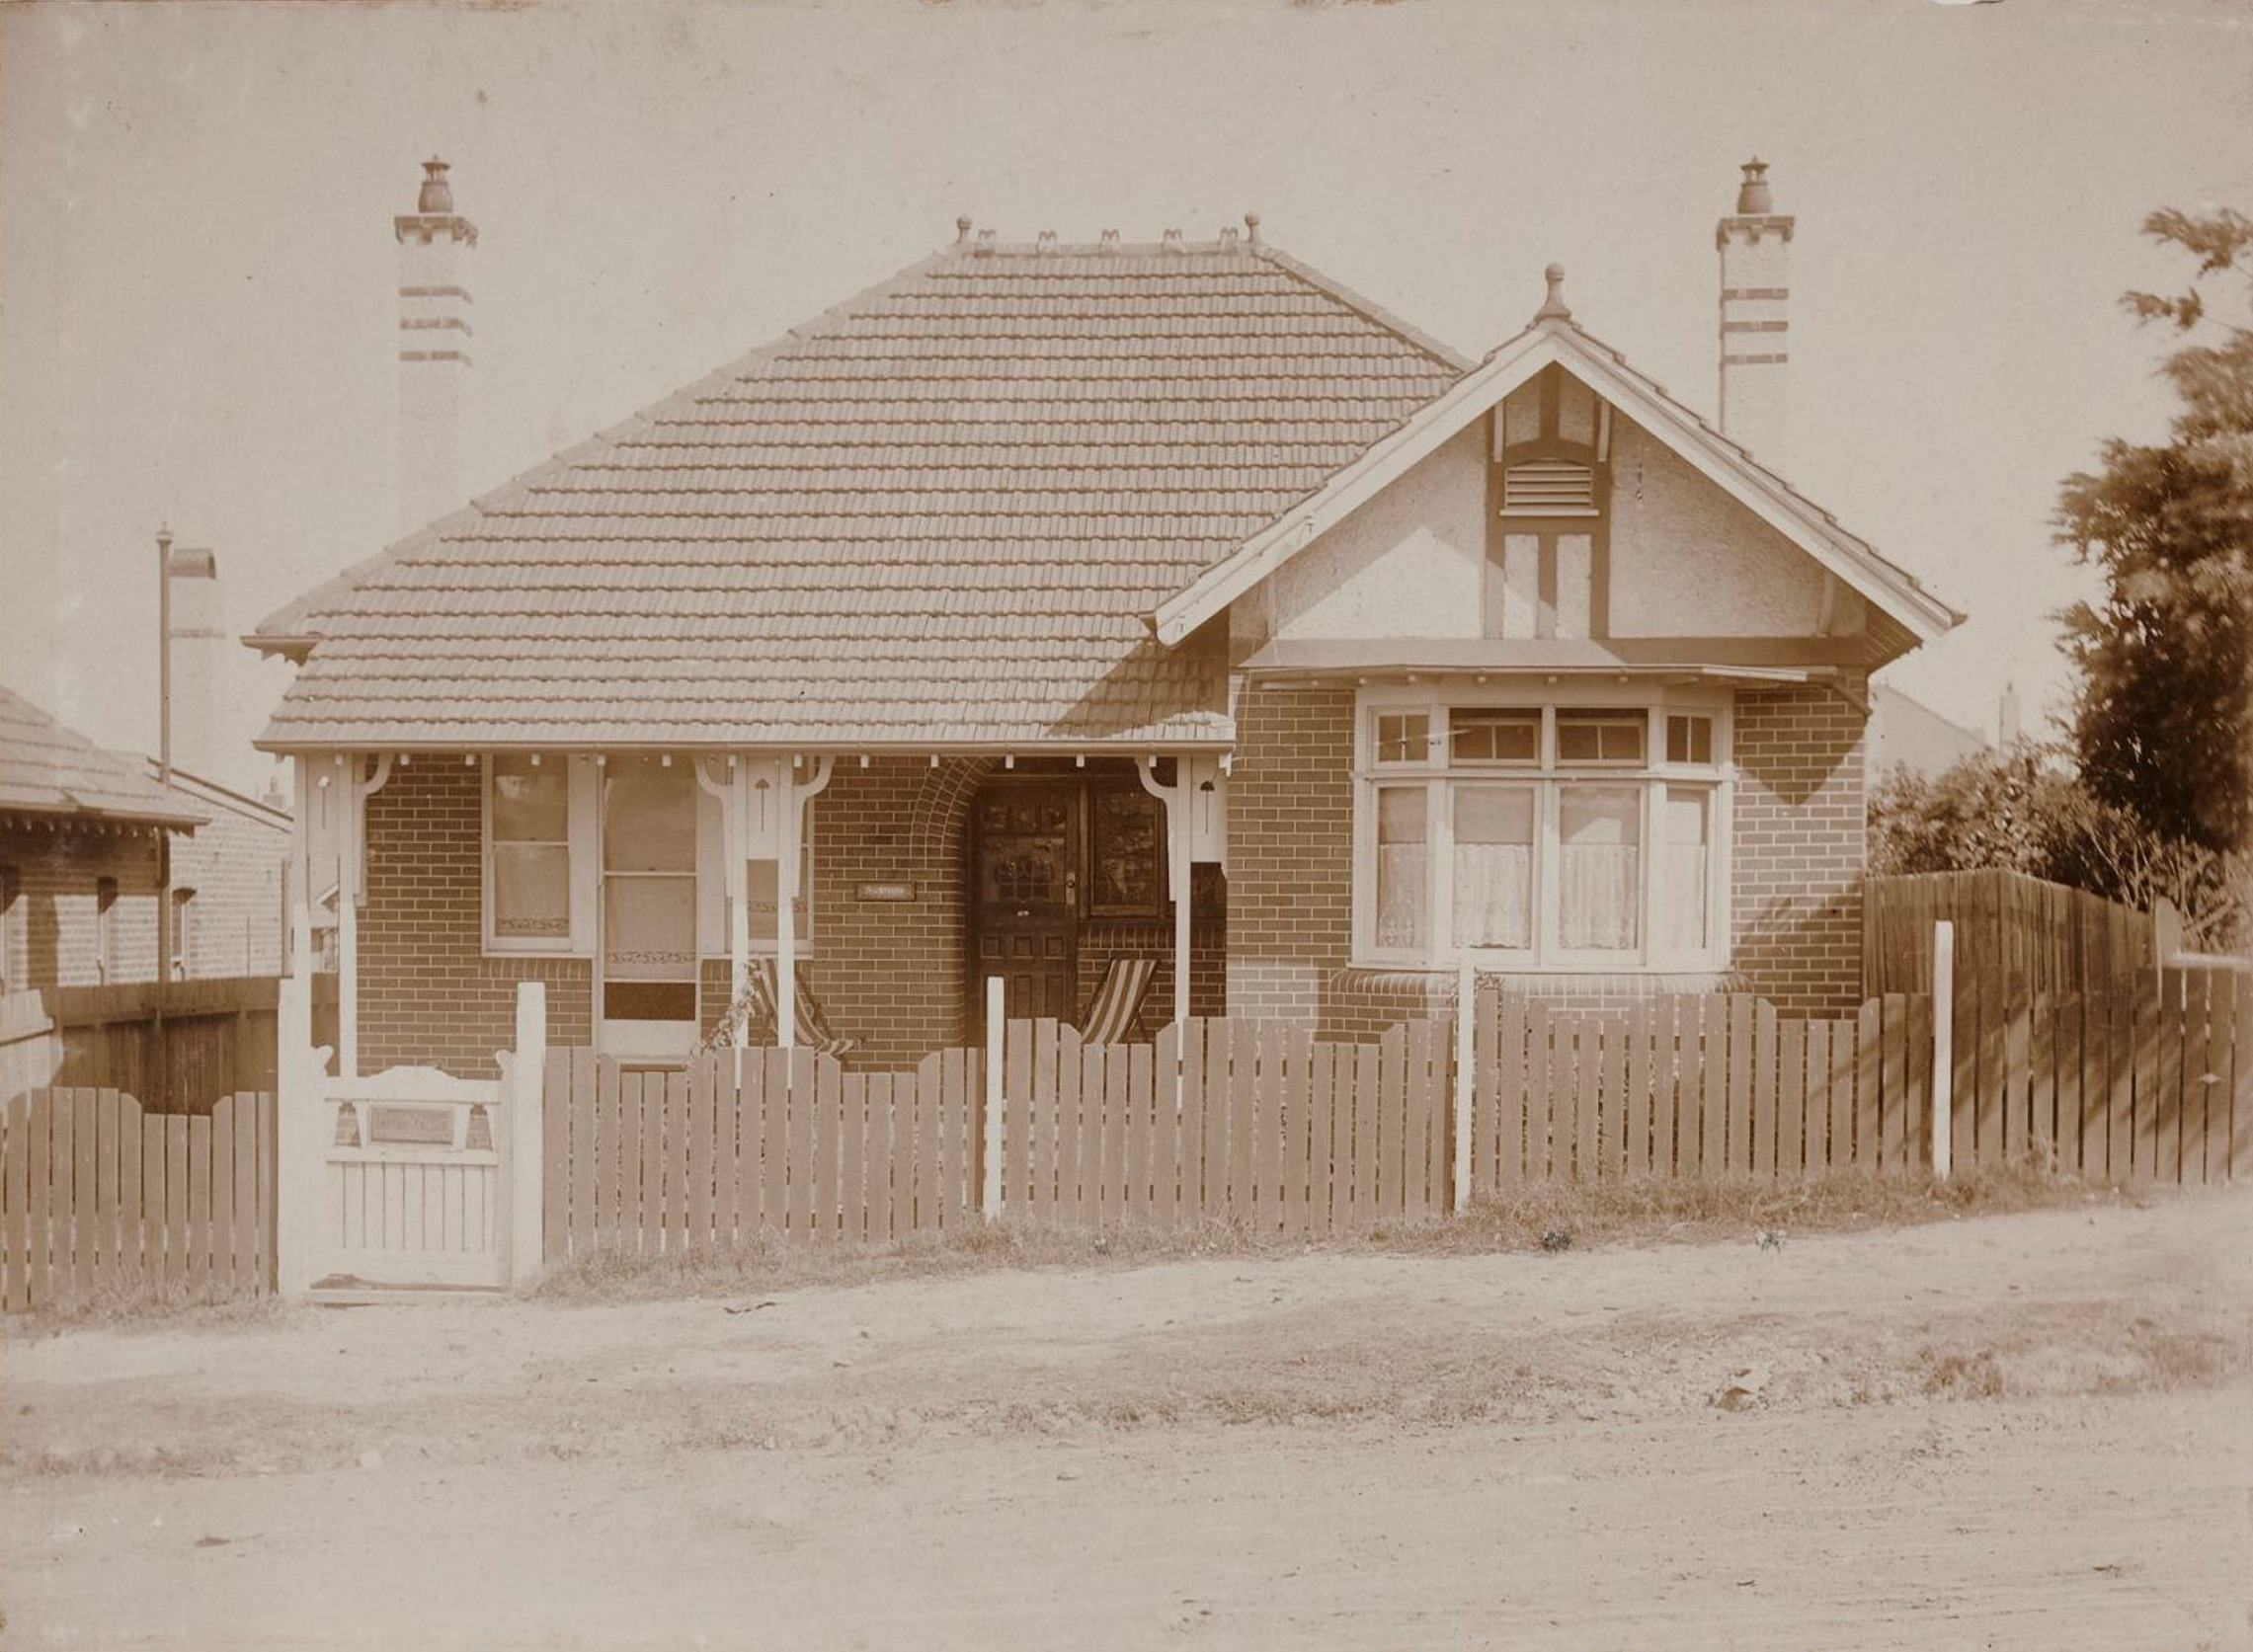 Scarboro, 174 Alt Street, Haberfield, N.S.W. around 1913  / photographer unknown